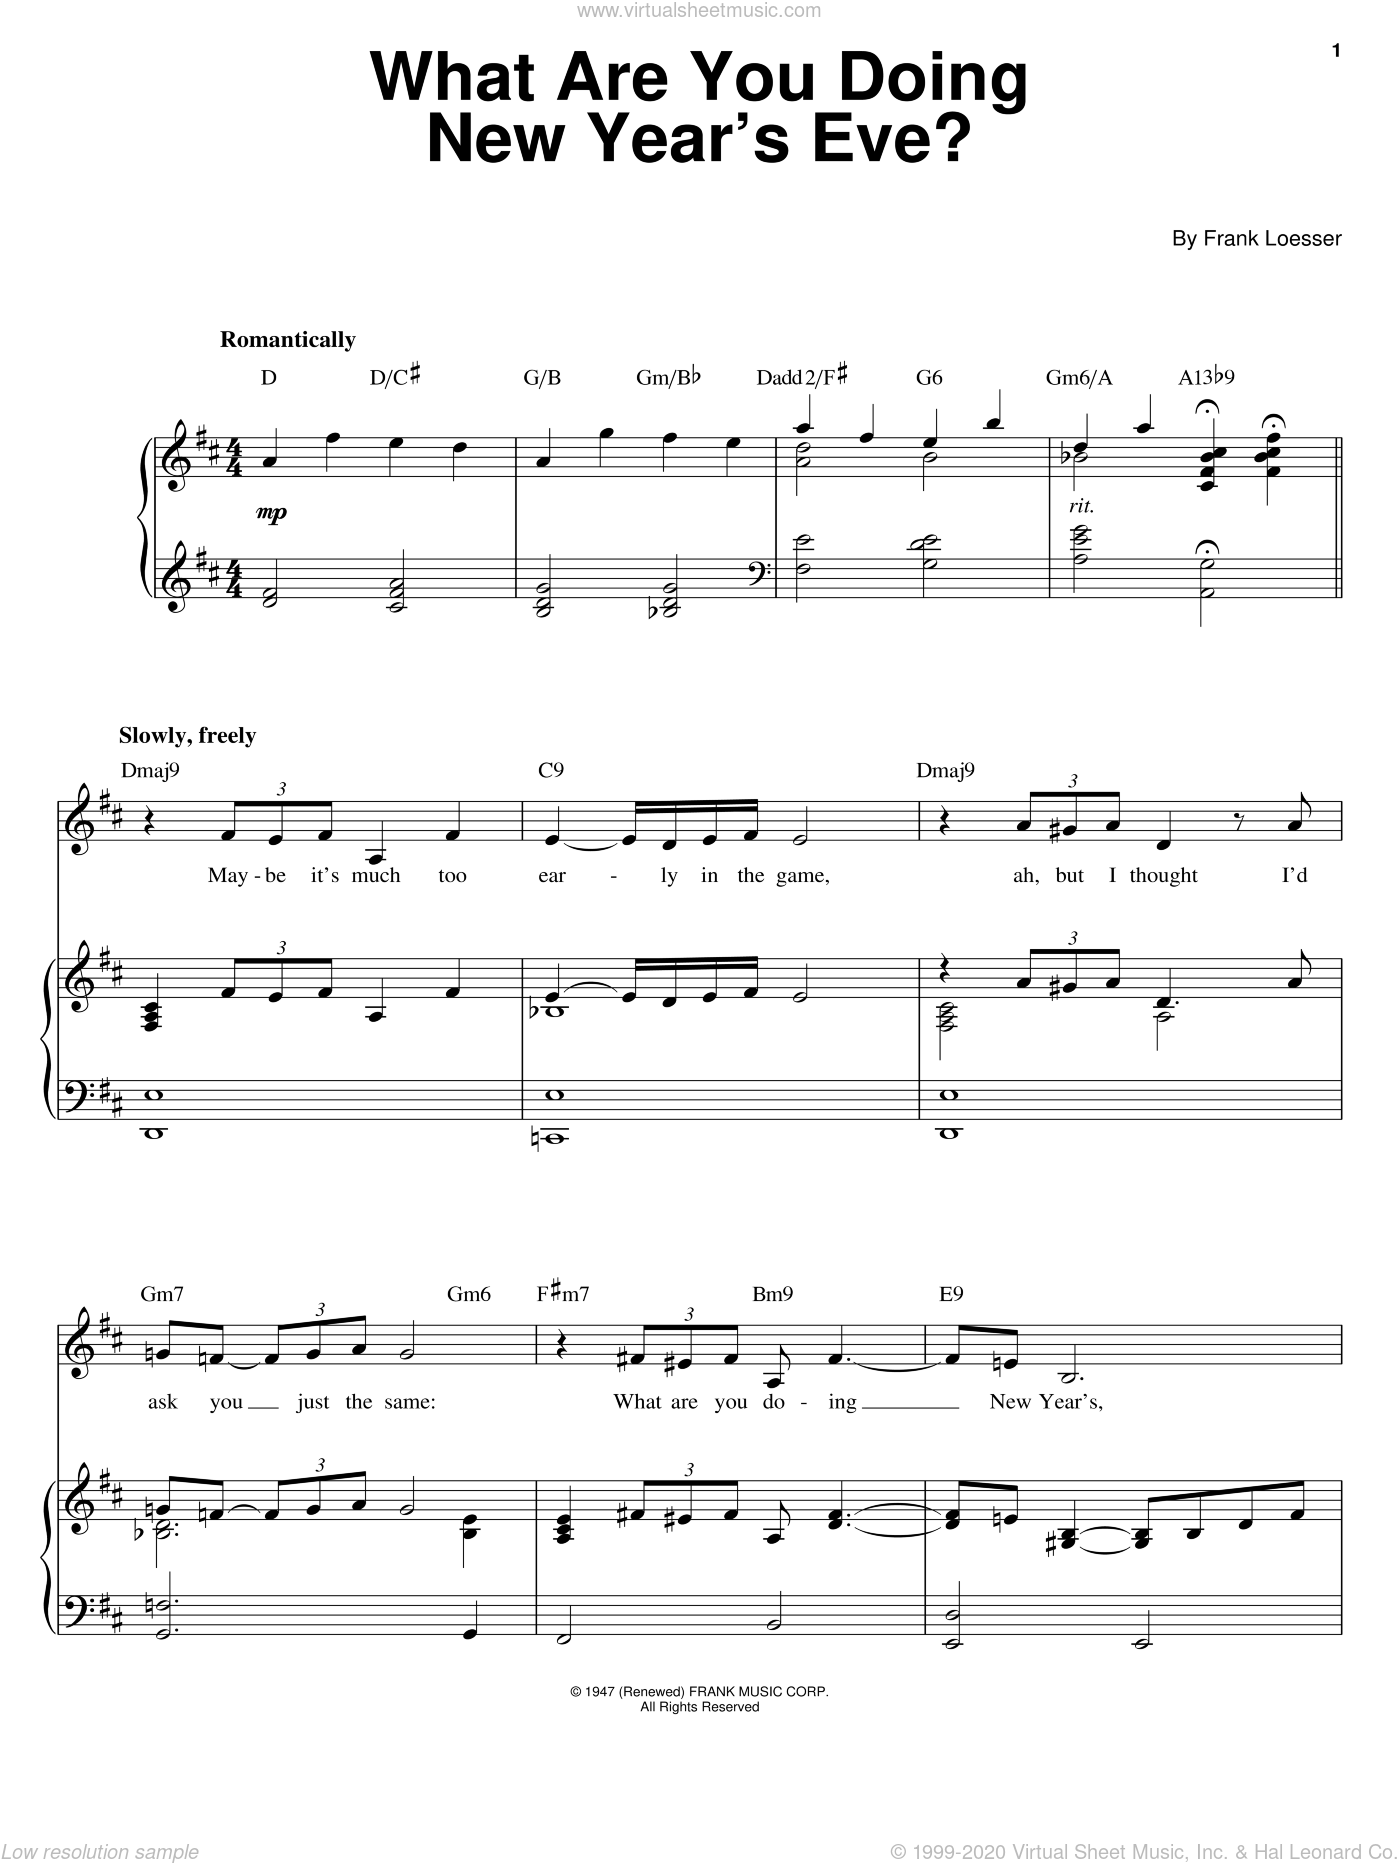 What Are You Doing New Year's Eve? sheet music for voice, piano or guitar by Barbra Streisand and Frank Loesser, intermediate skill level